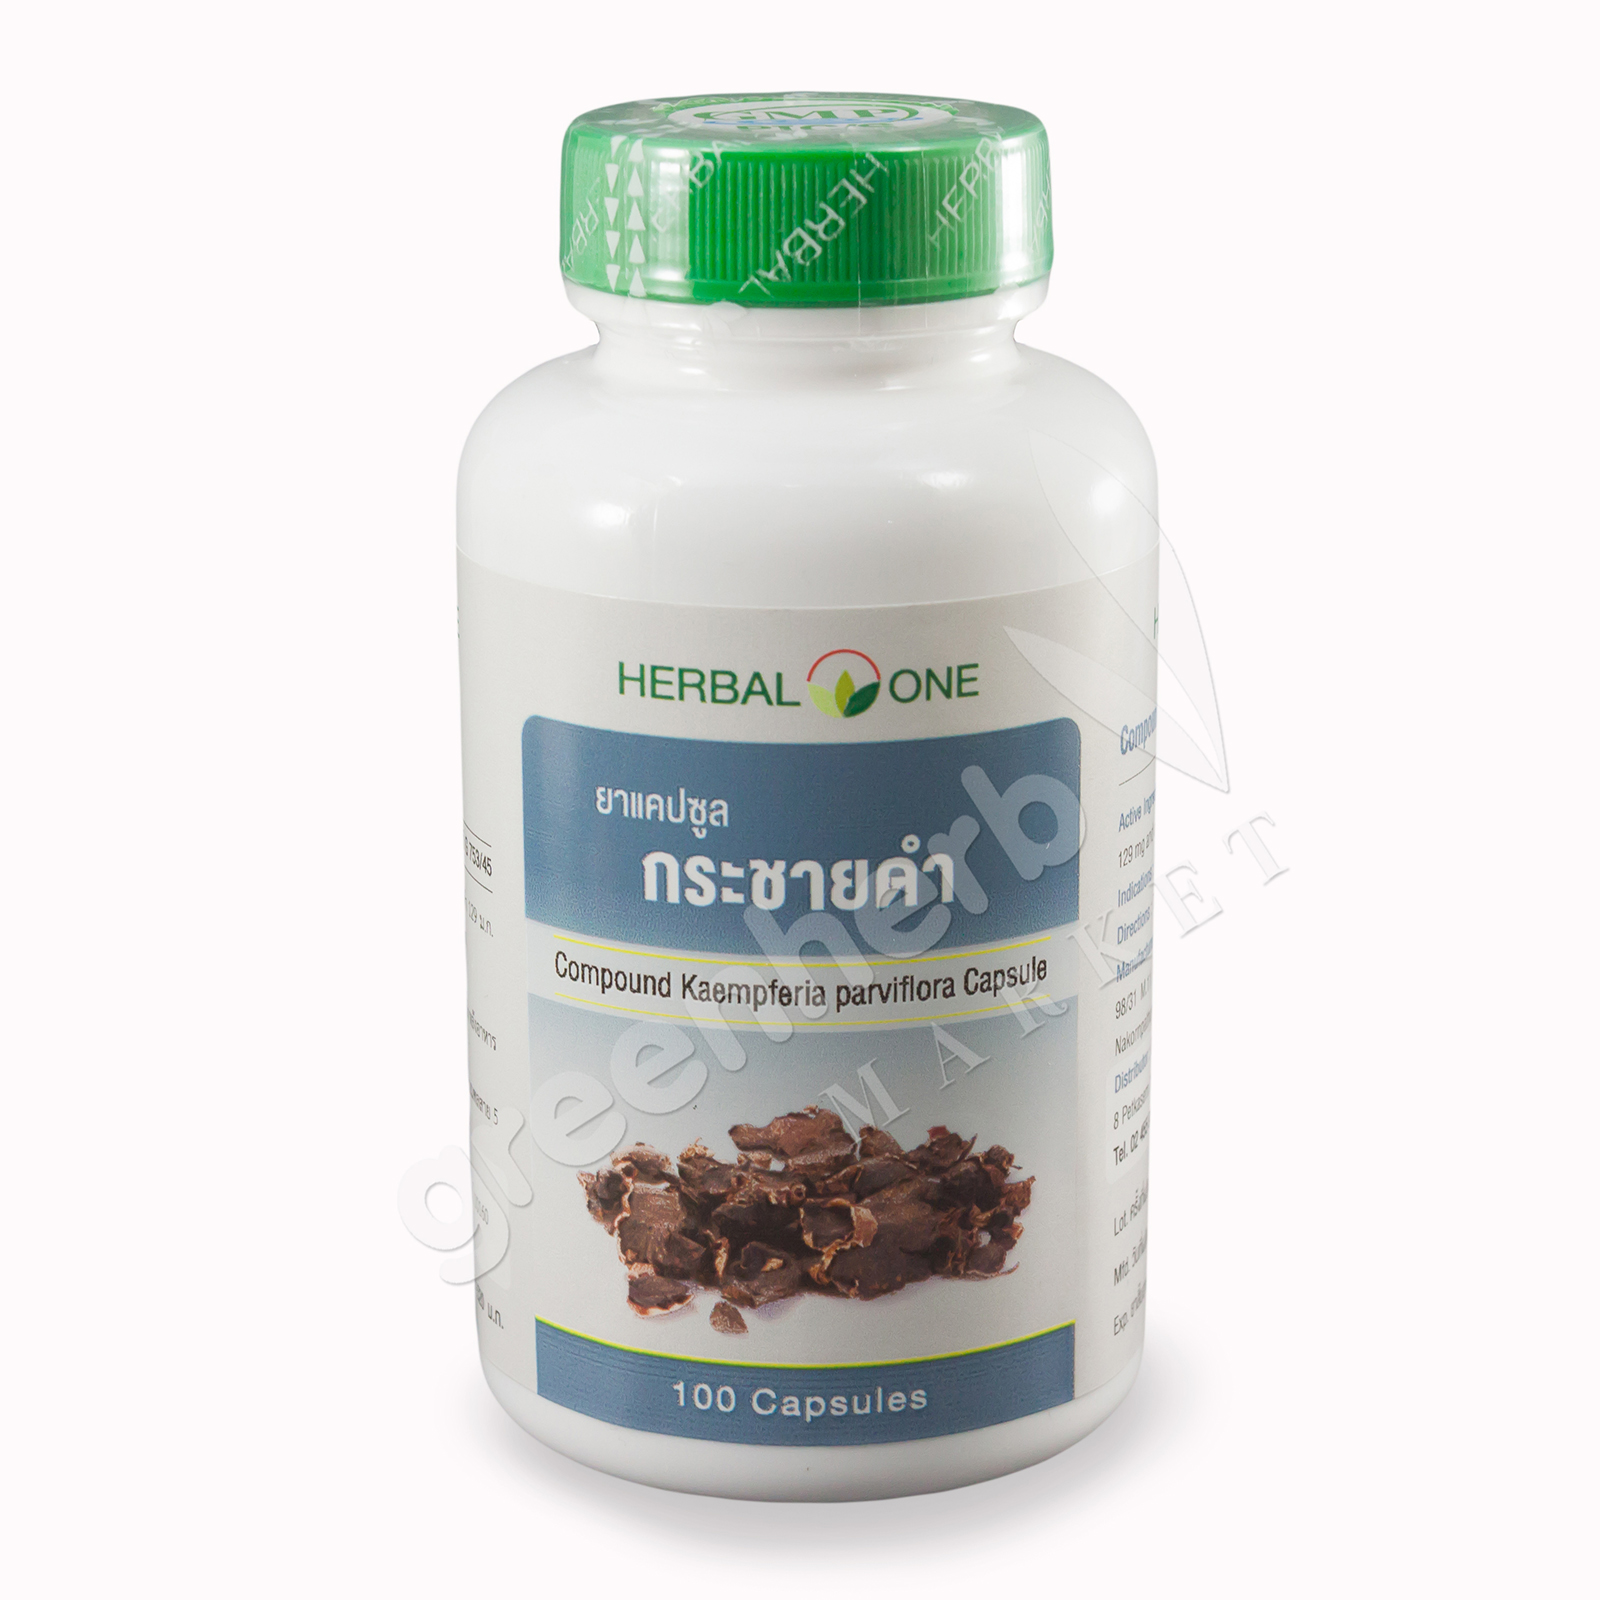 Compound Kaempteria paviflora Capsule - Herbal One, OuayUn Osoth